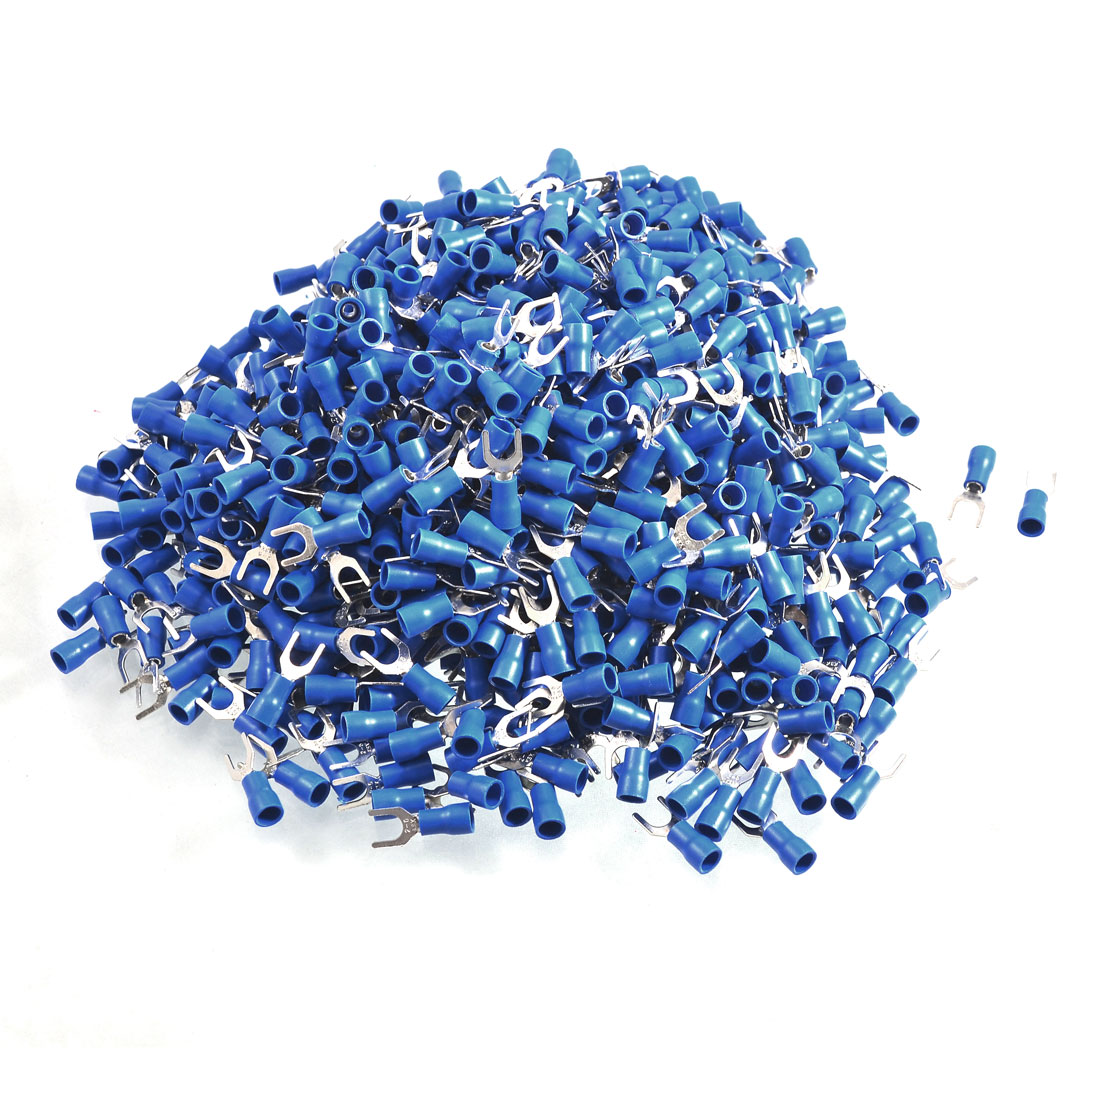 1000-x-Blue-PVC-Insulating-Sleeve-Furcate-Terminals-Cable-Lug-SV2-5